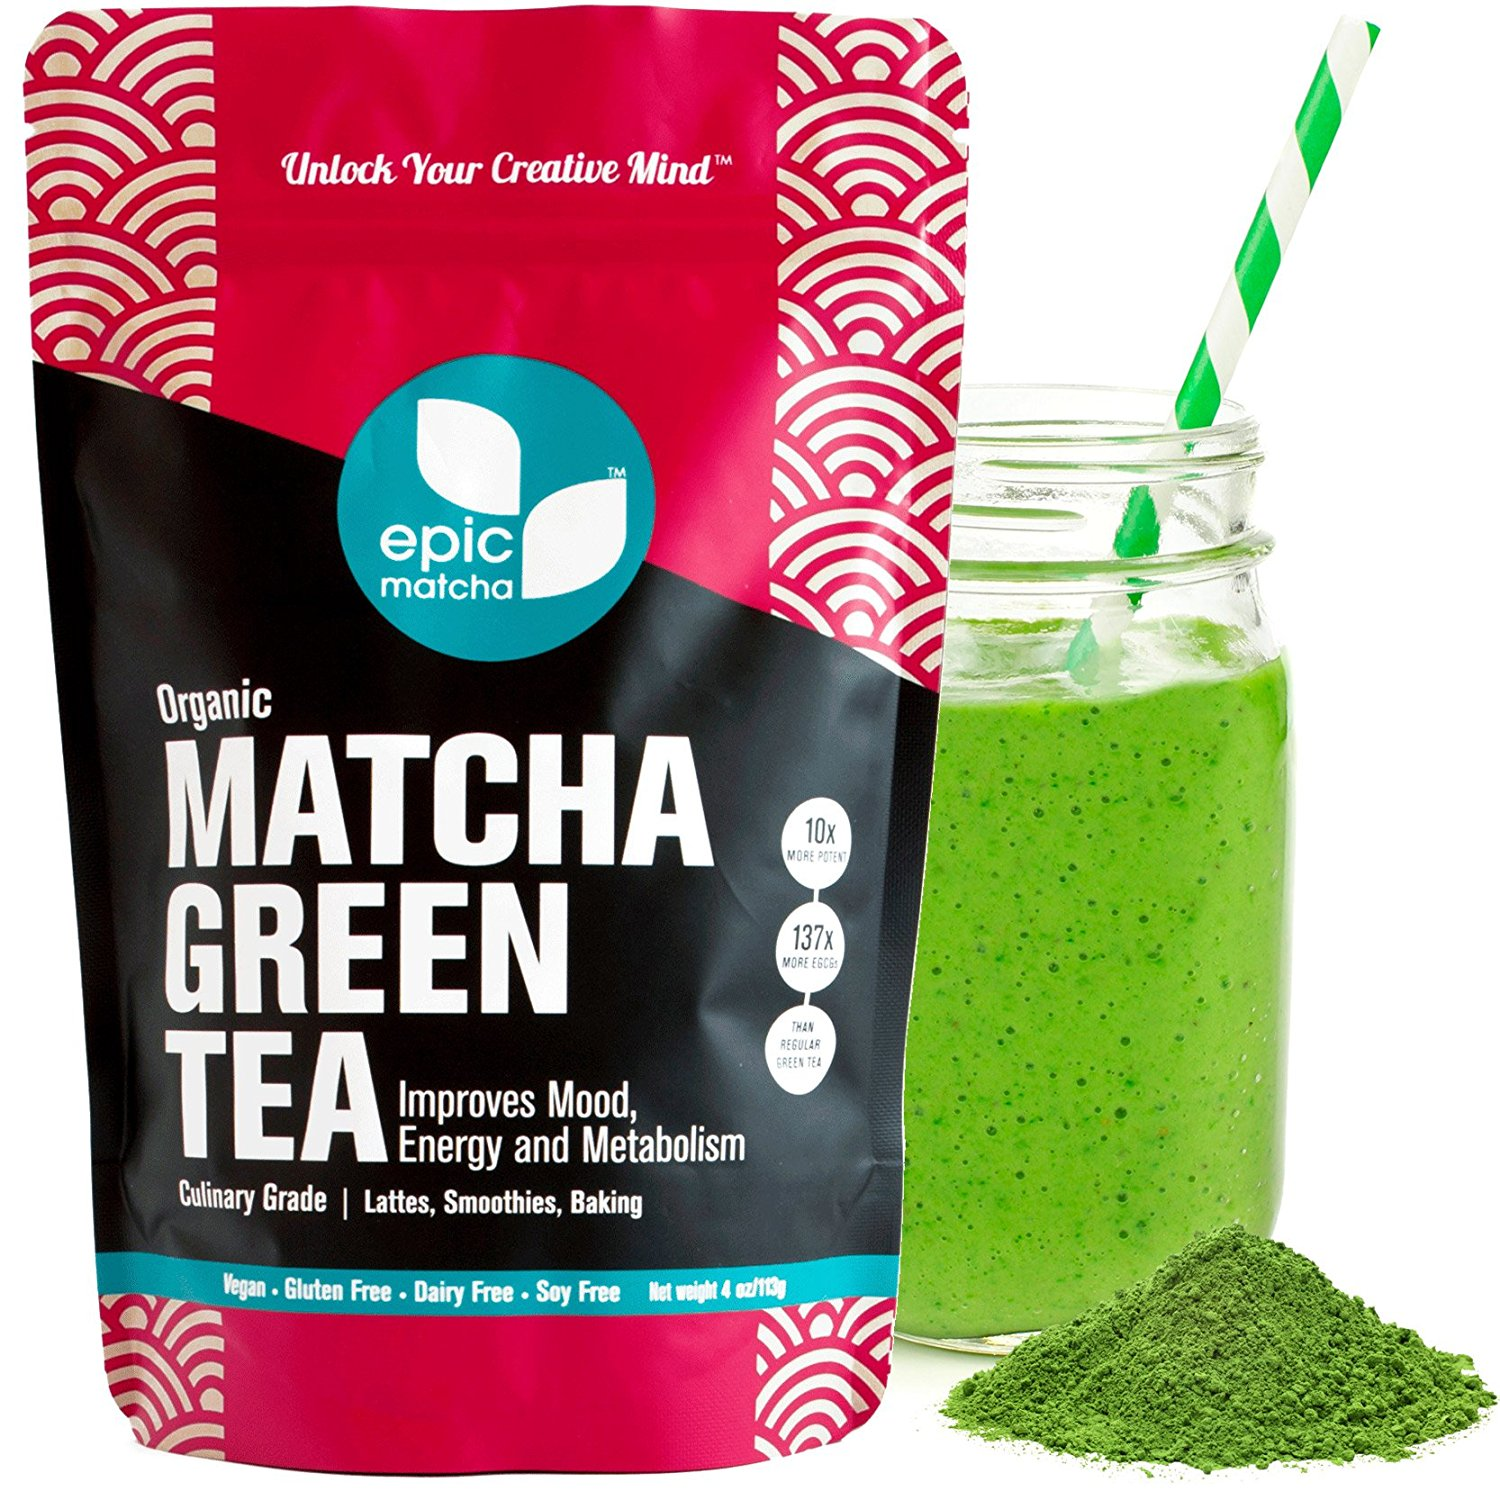 Epic Matcha Green Tea Powder - USDA Organic - Best Culinary Grade - Free 37+ Smoothie & Baking Recipes and...